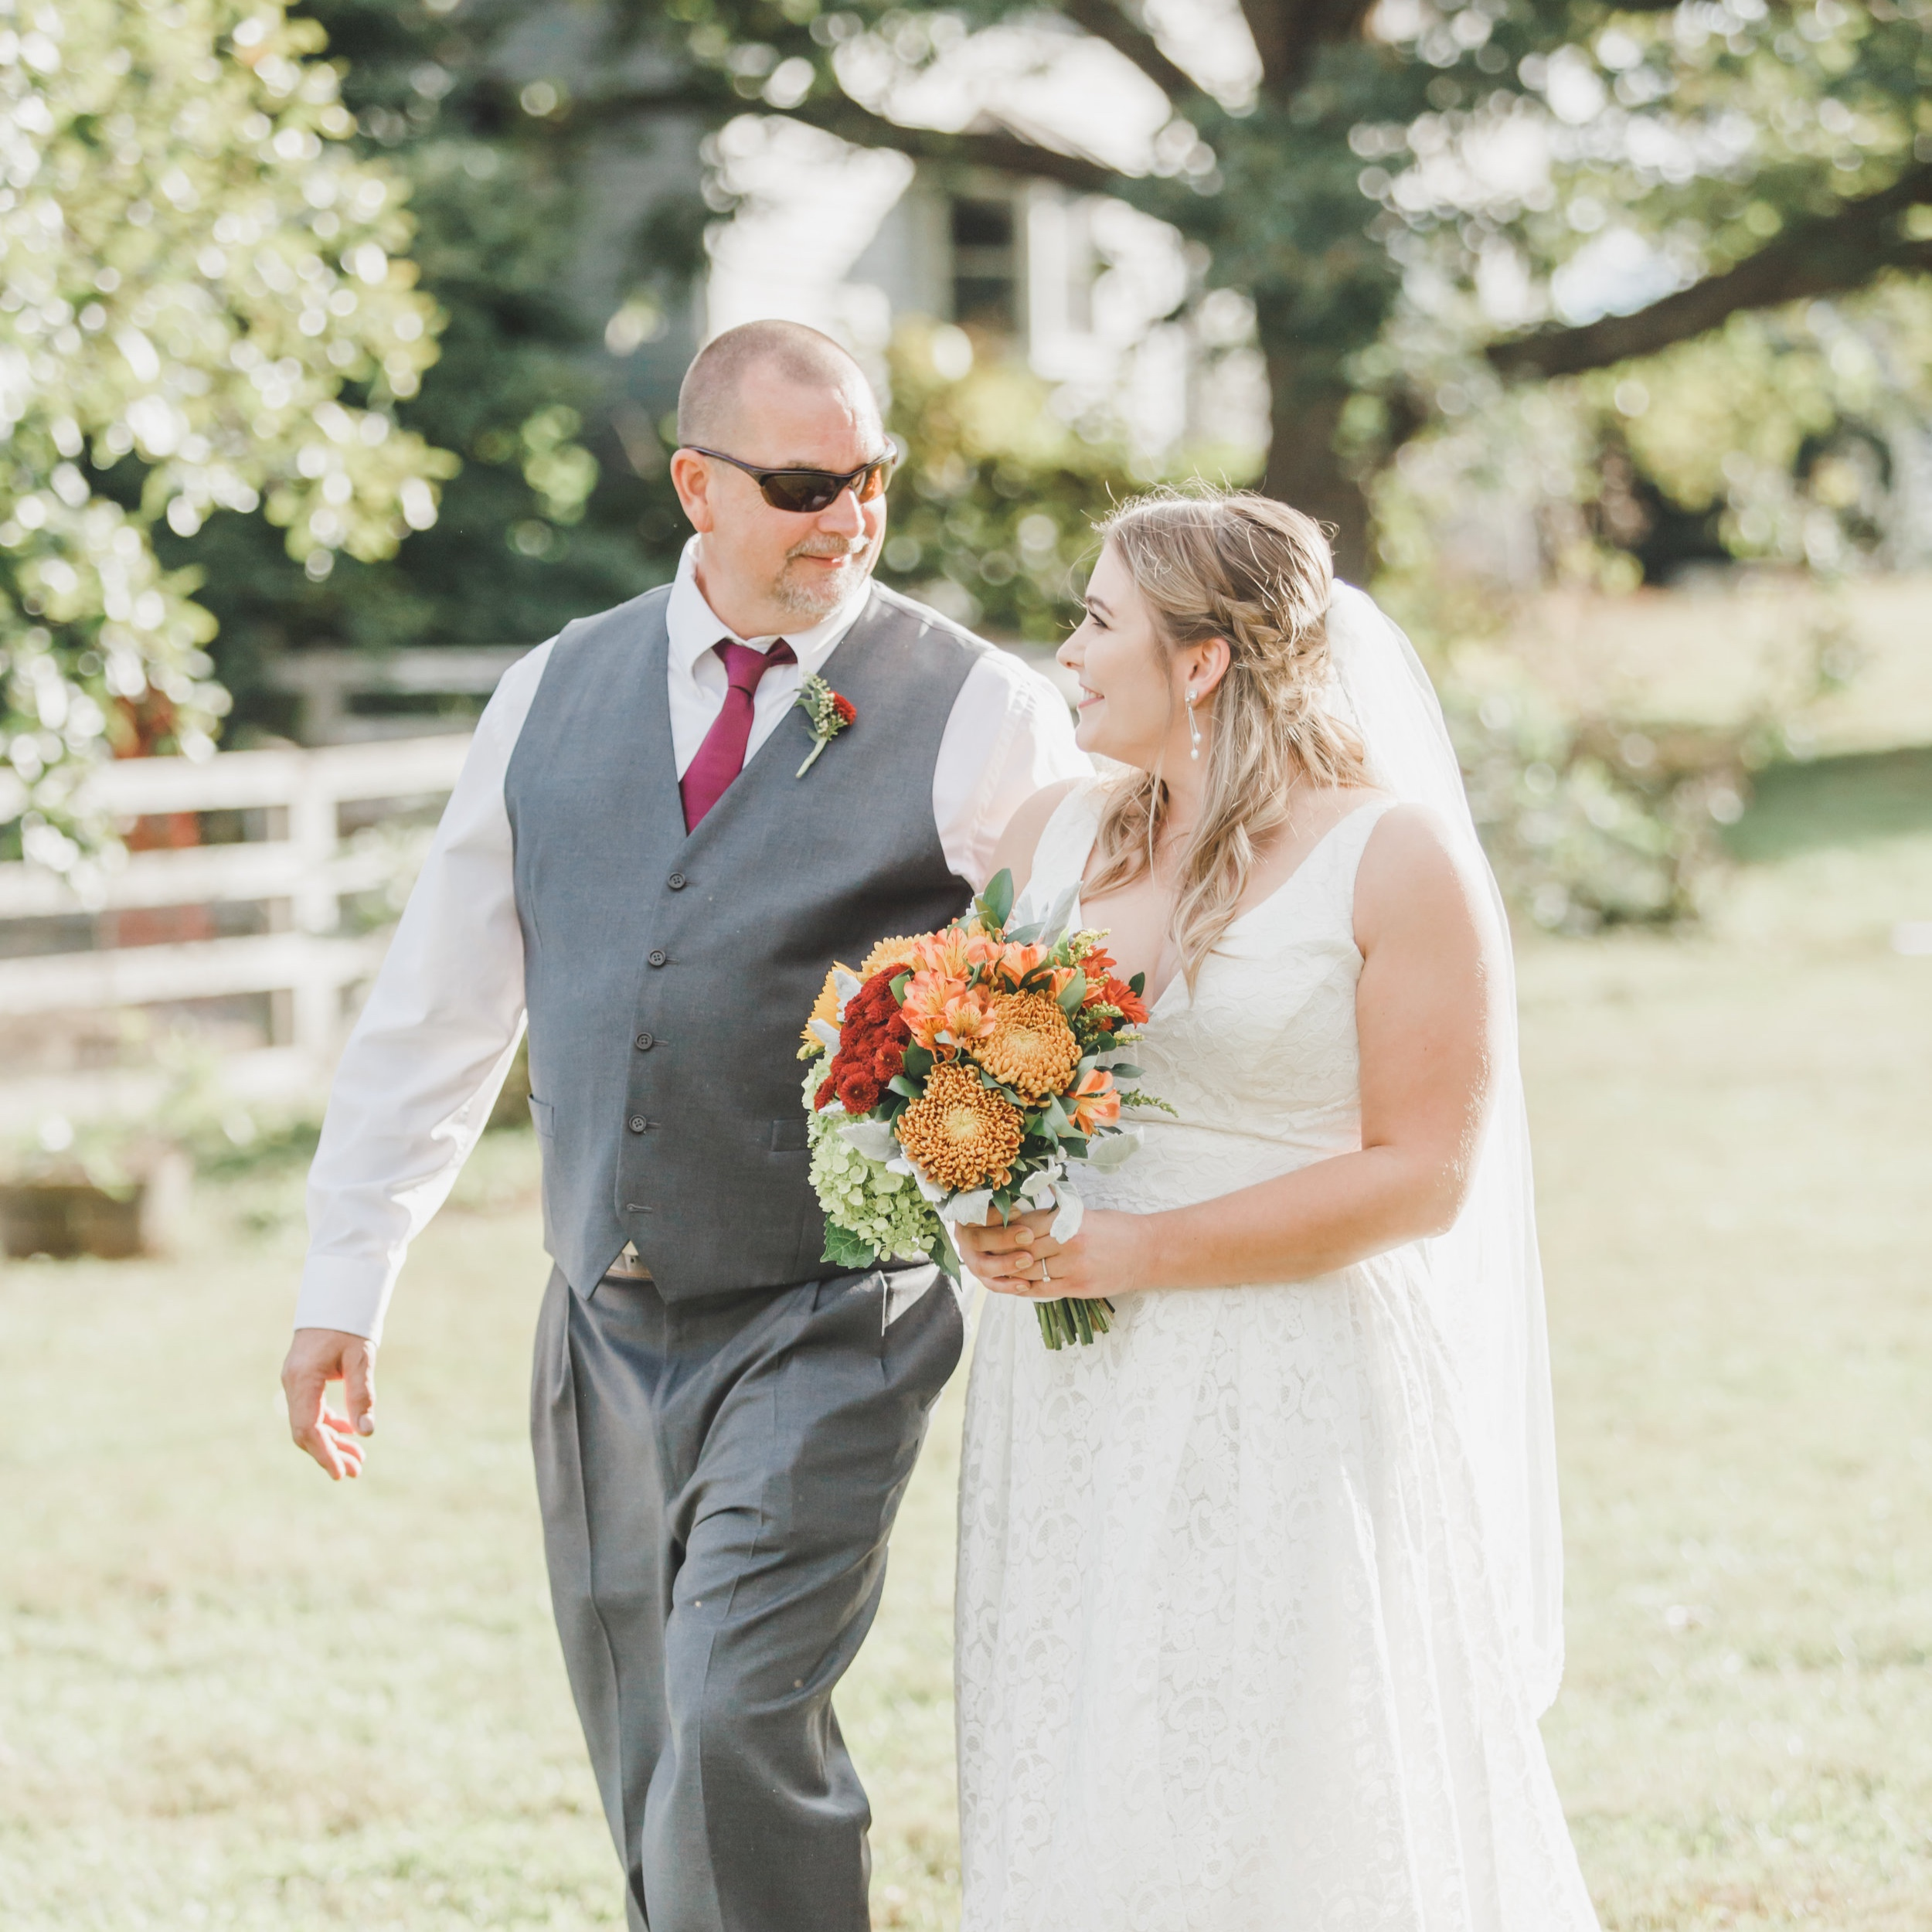 Fling - Virginia Wedding Photographer - Photography by Amy Nicole-1020-13.jpg